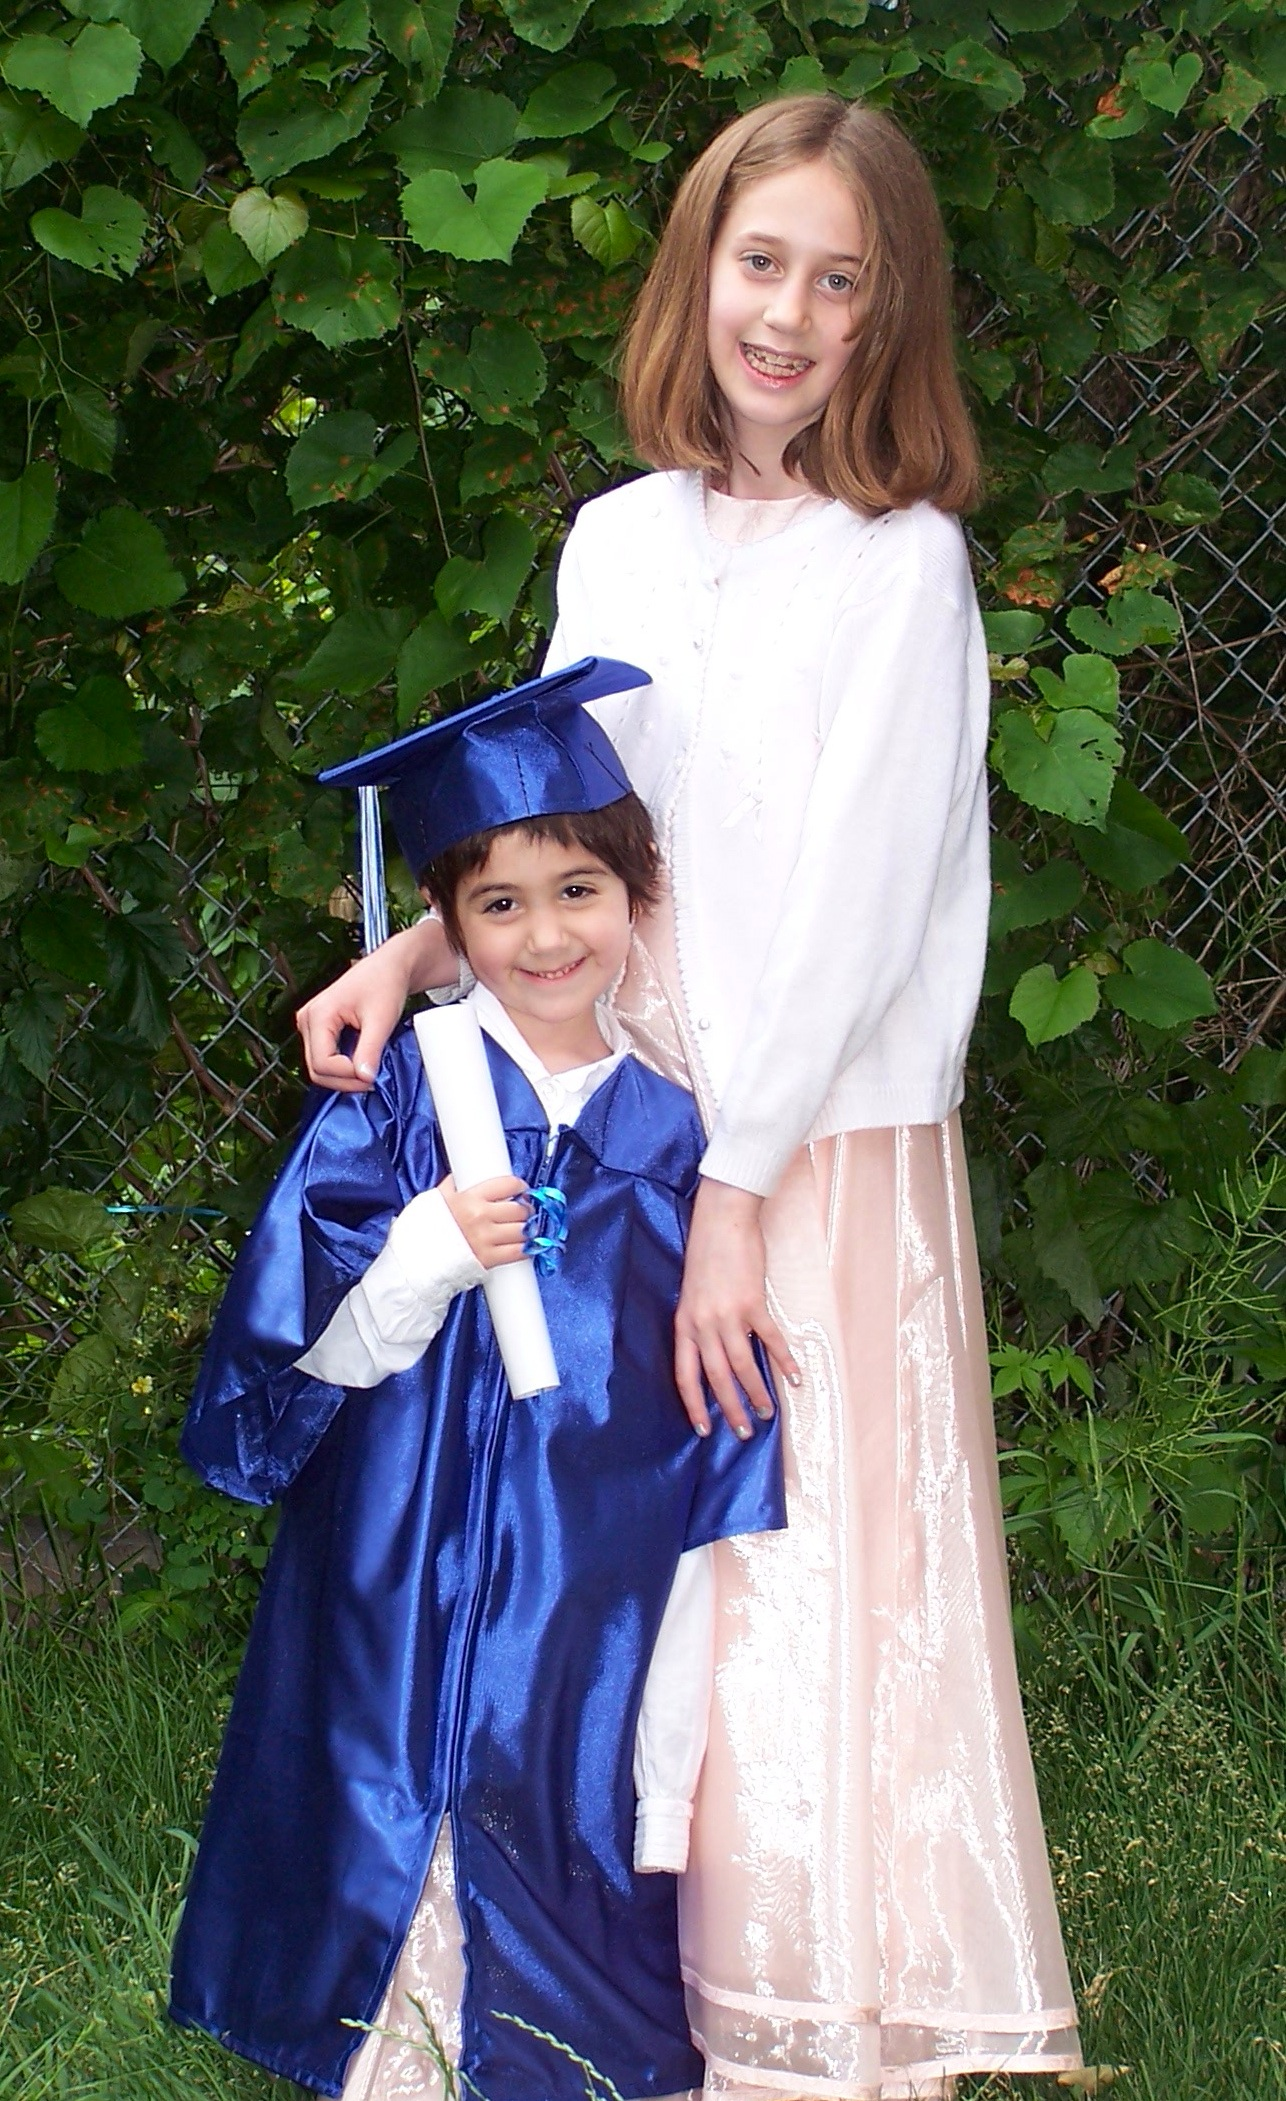 Preschool - Kindergarten Graduation Caps and Gowns